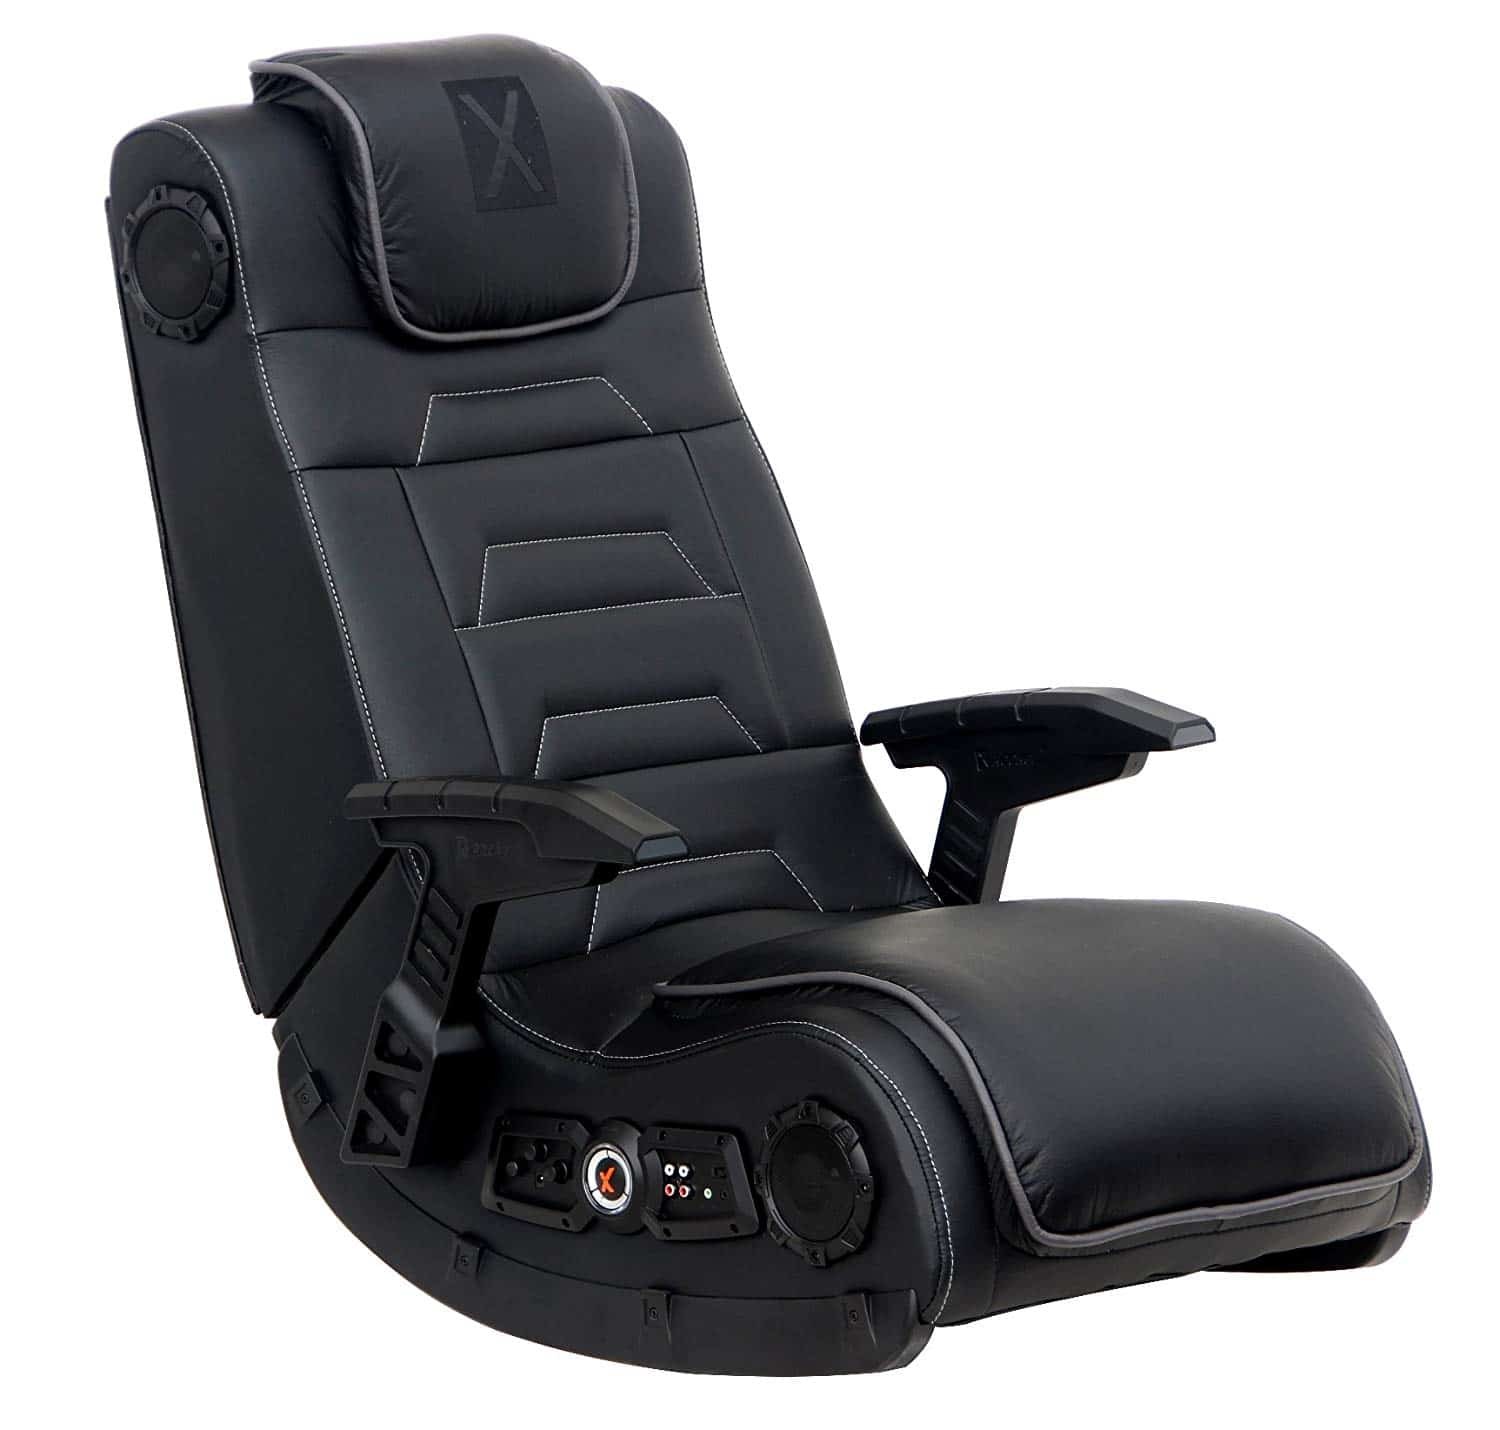 X Rocker Pro H3 4.1 Audio Gaming Chair  sc 1 st  Game Gavel : best game chair - lorbestier.org